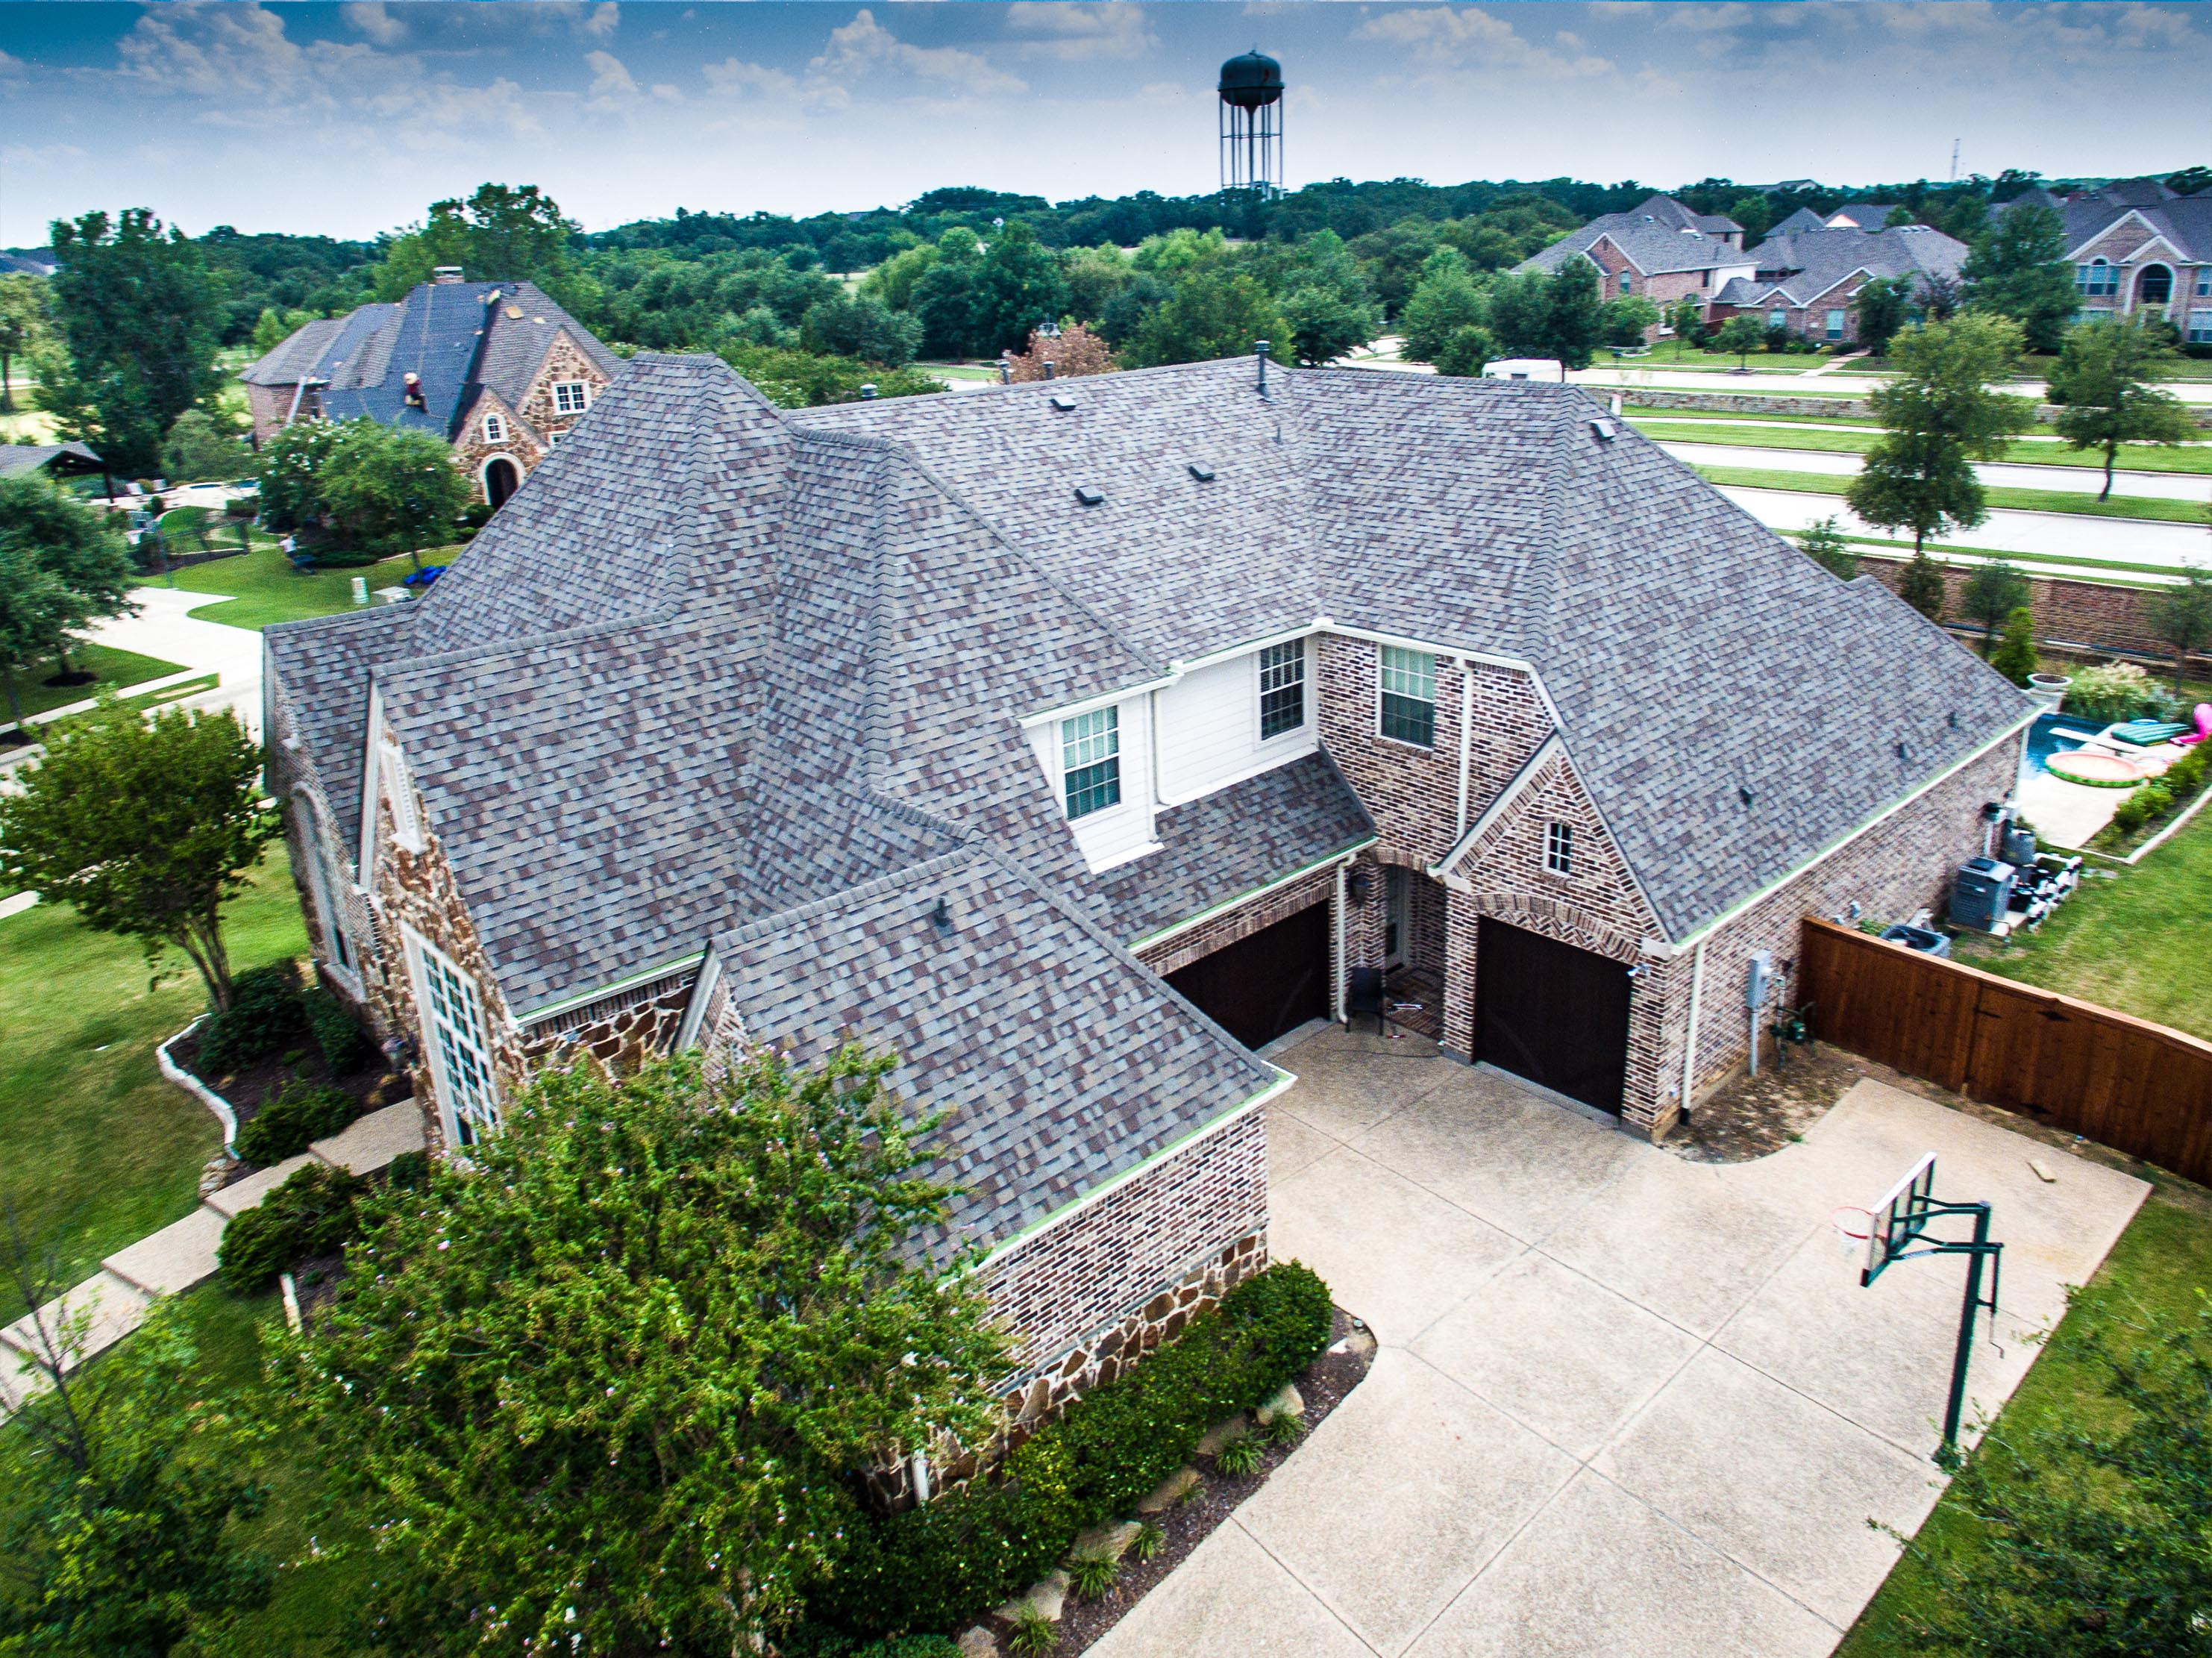 Deluxe Grade Shingle Roofing Tx